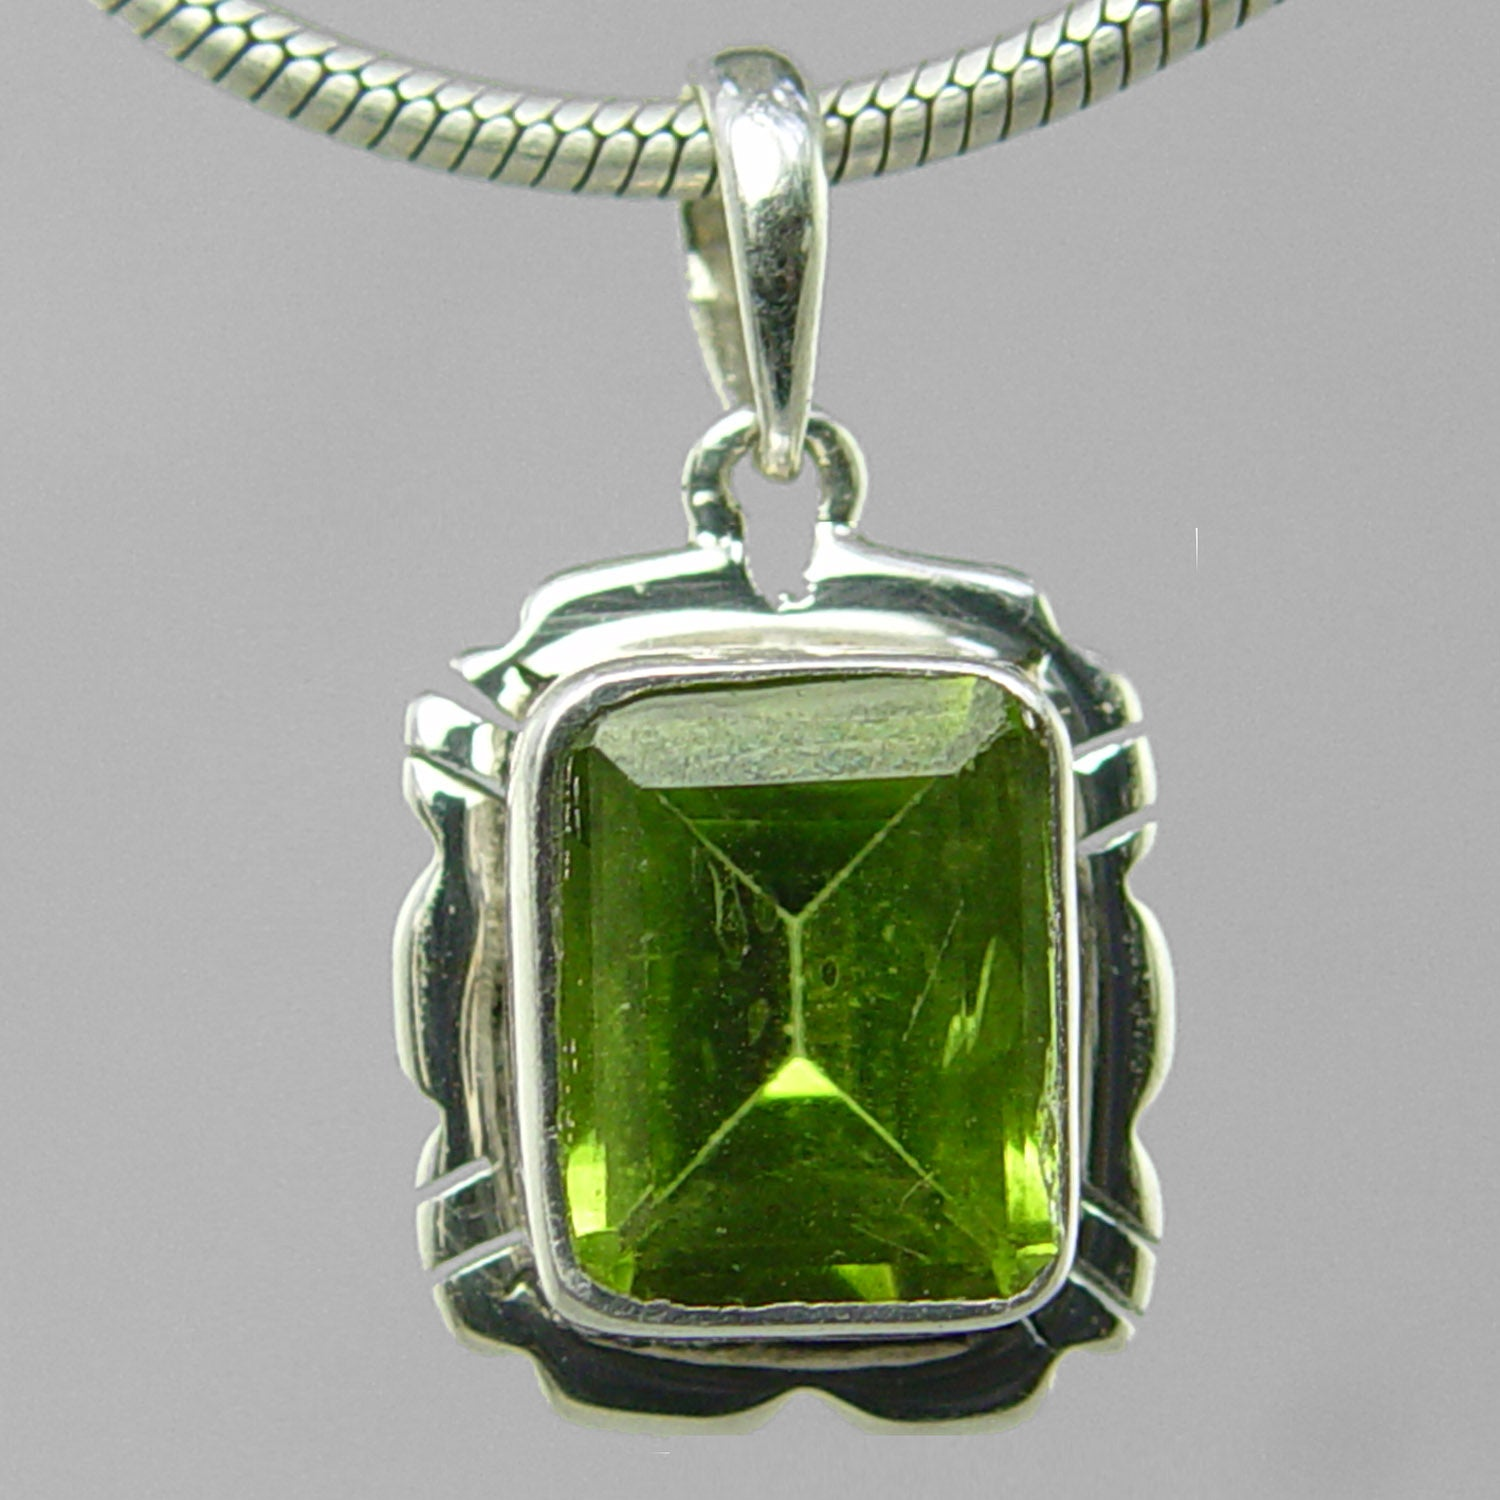 Peridot 3.5 ct Faceted Emerald Cut Bezel Set Sterling Silver Pendant